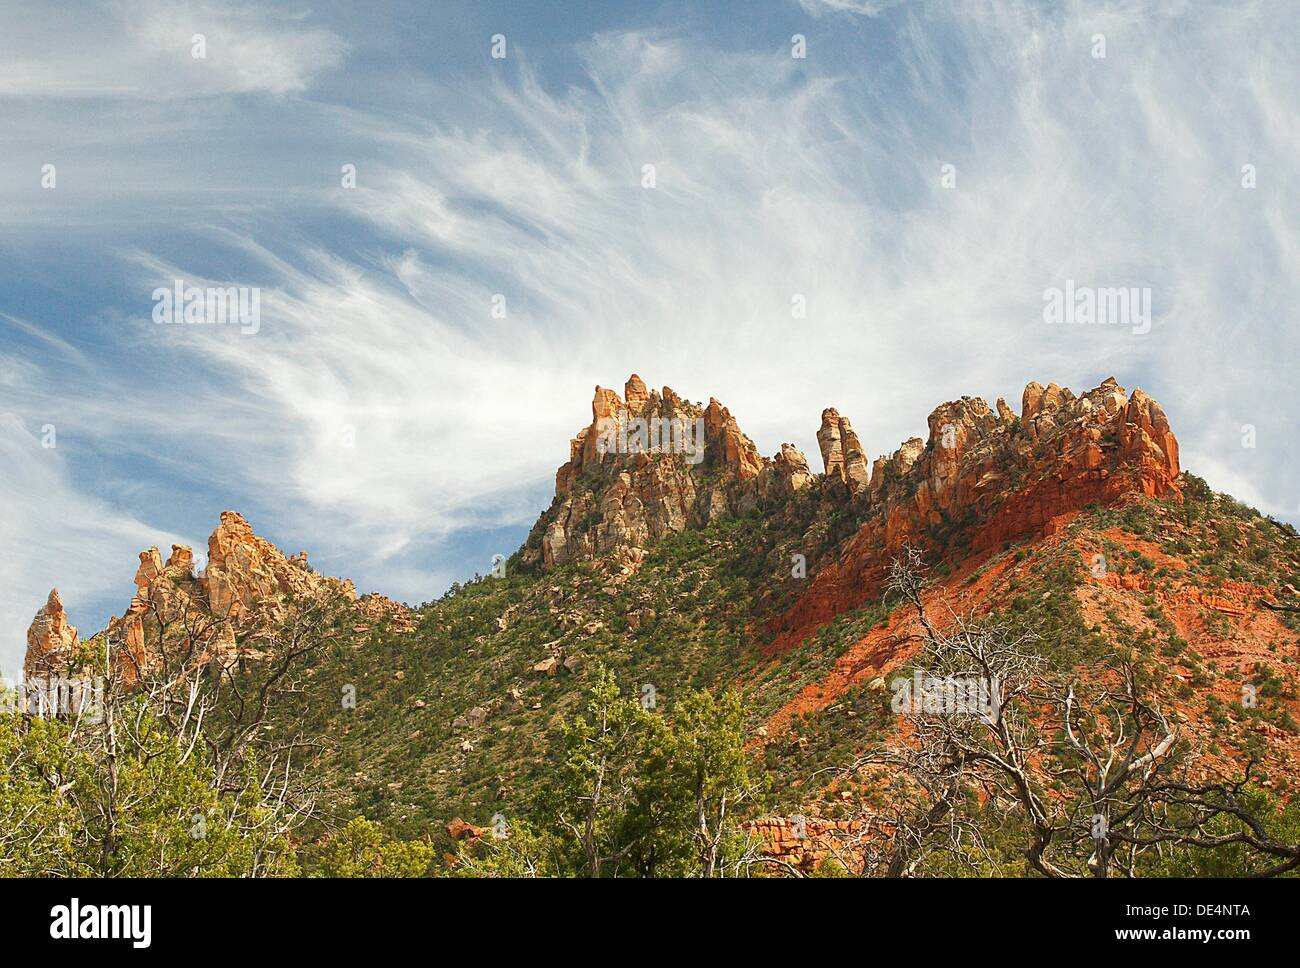 Wispy clouds encircle the Eagle Crags near Zion National Park, Utah - Stock Image